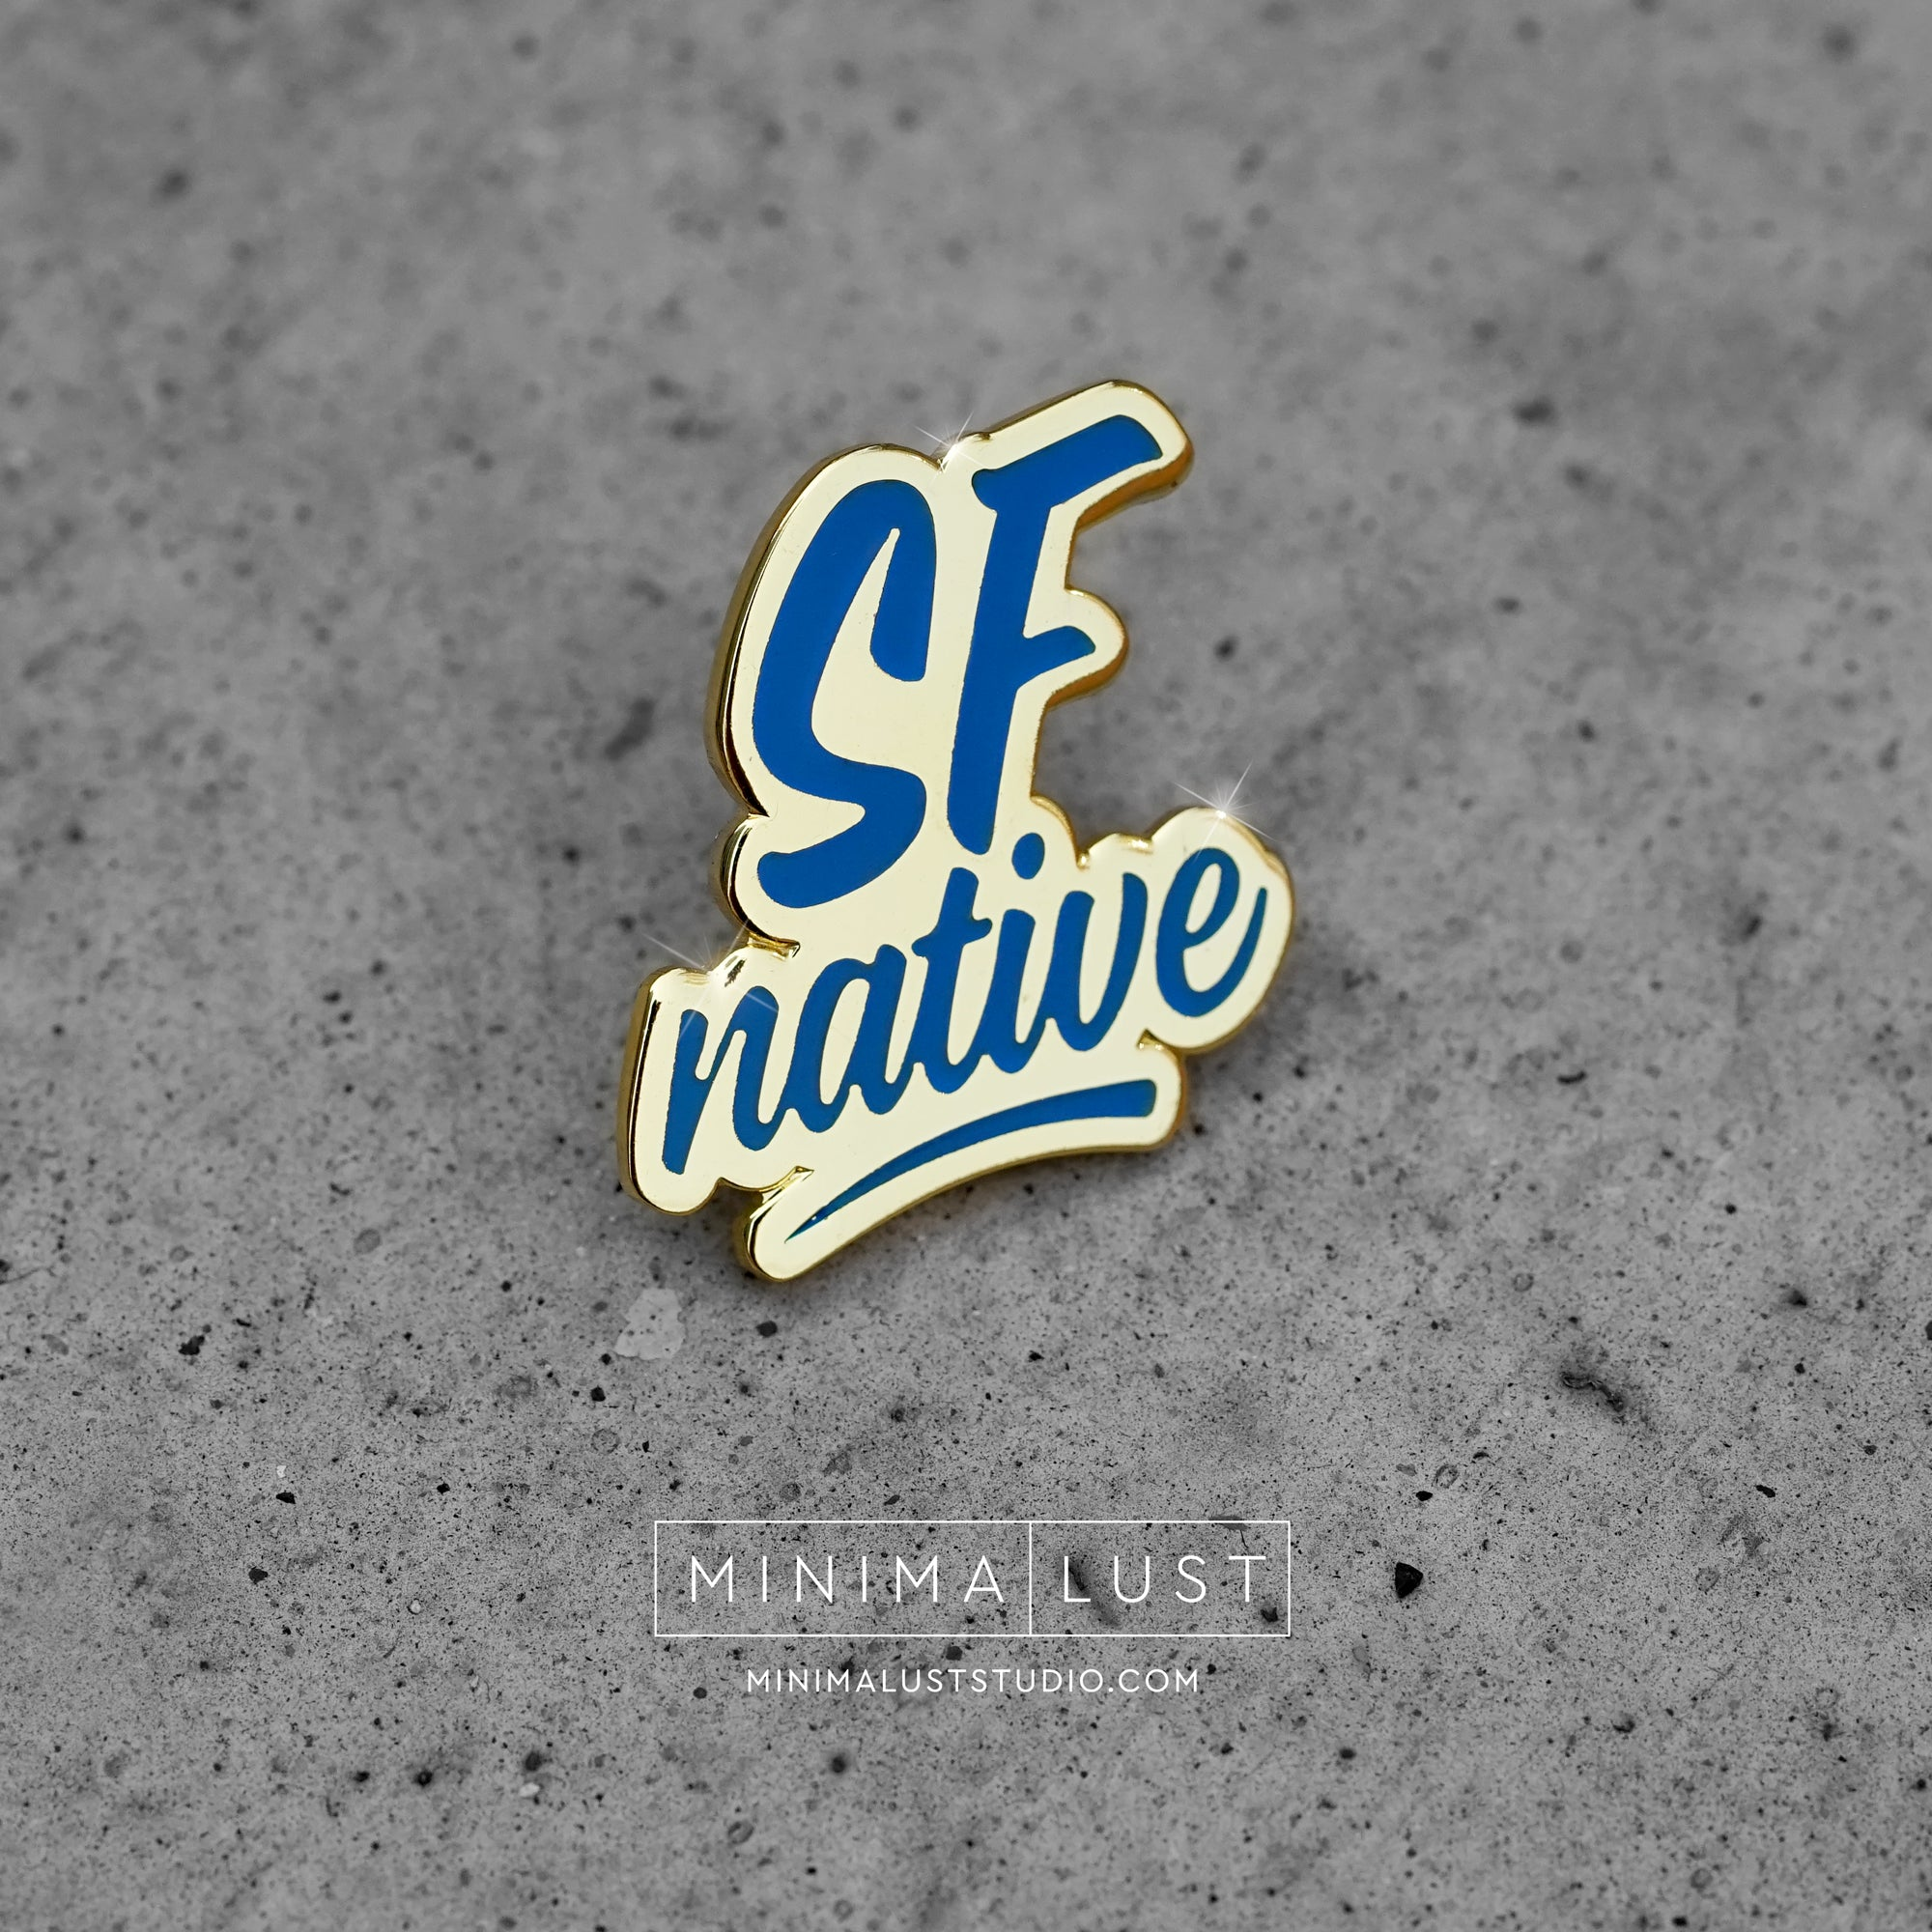 SF Native Blue & Gold Enamel Lapel Pin